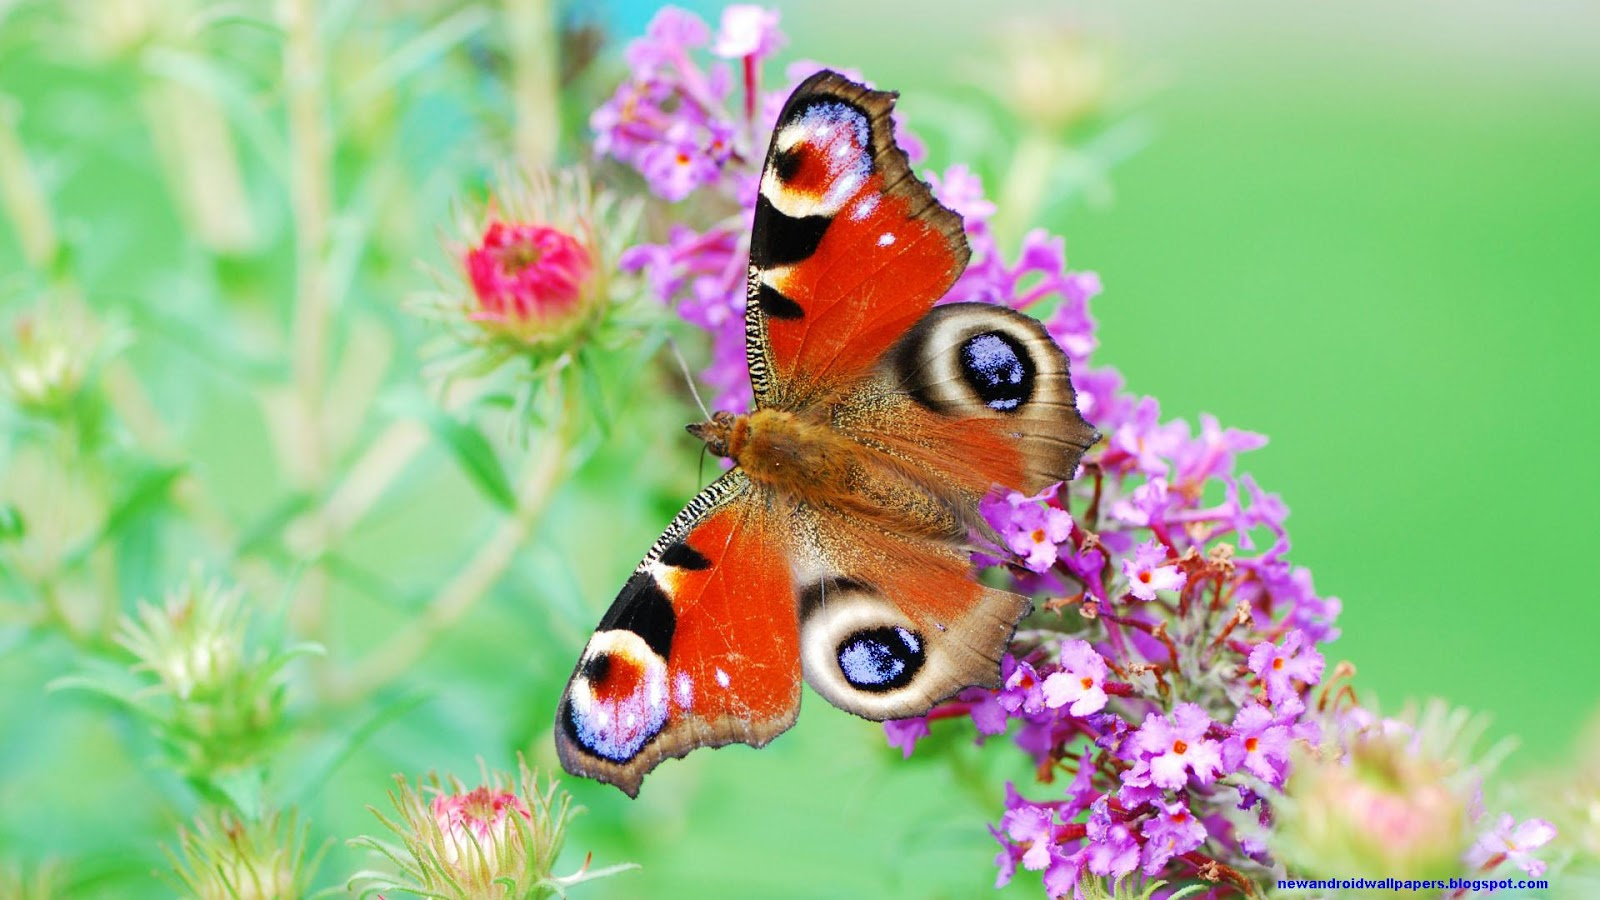 Beautiful butterfly with flowers hd wallpapers free for android and beautiful butterfly sitting on flower hd wallpapers for android and desktop izmirmasajfo